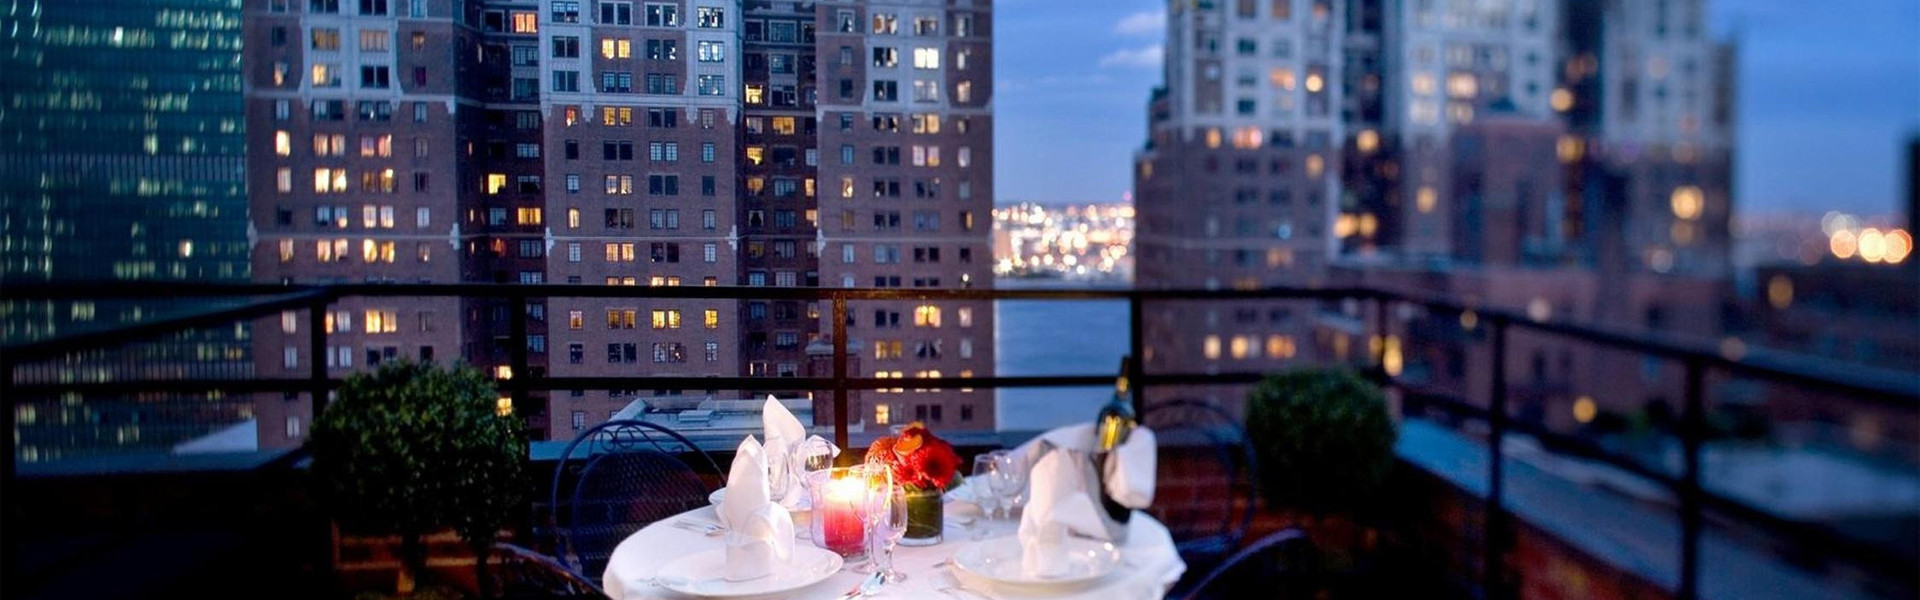 Pictures of Our New York City Hotel | Westgate New York City | Midtown Manhattan Reimagined